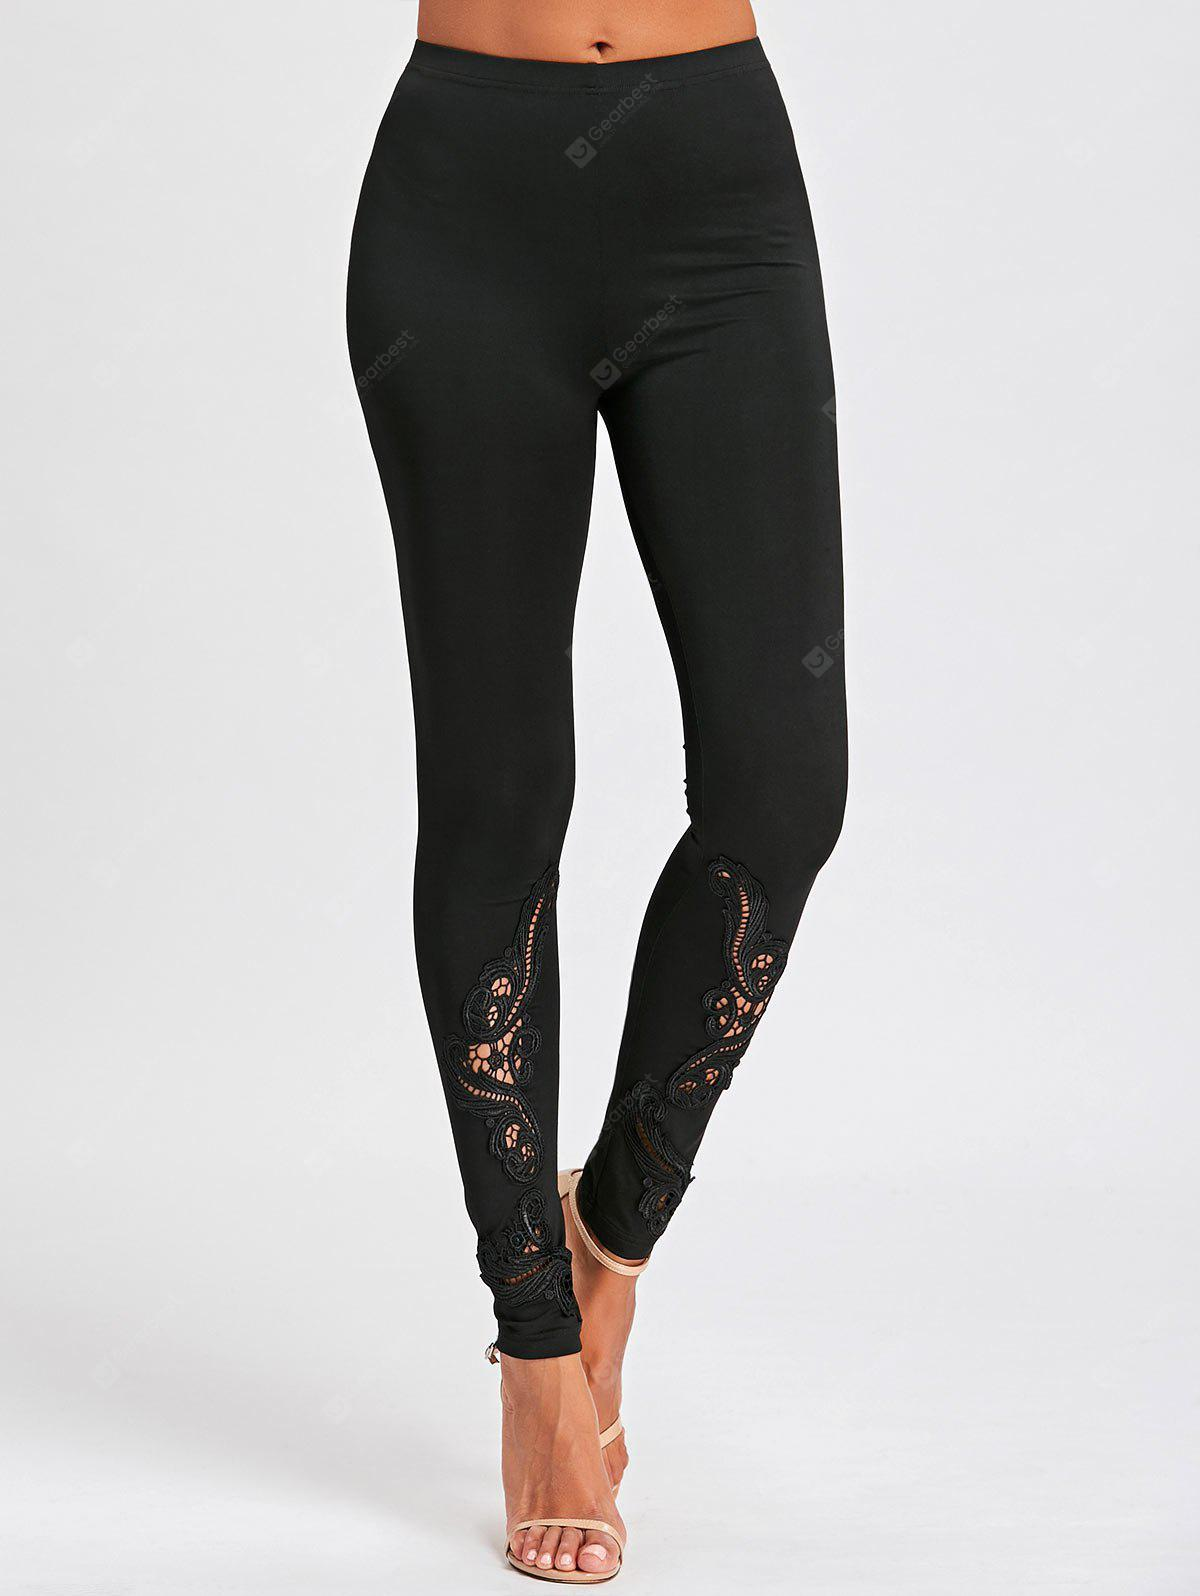 Lace Panel Hollow Out Tight Leggings